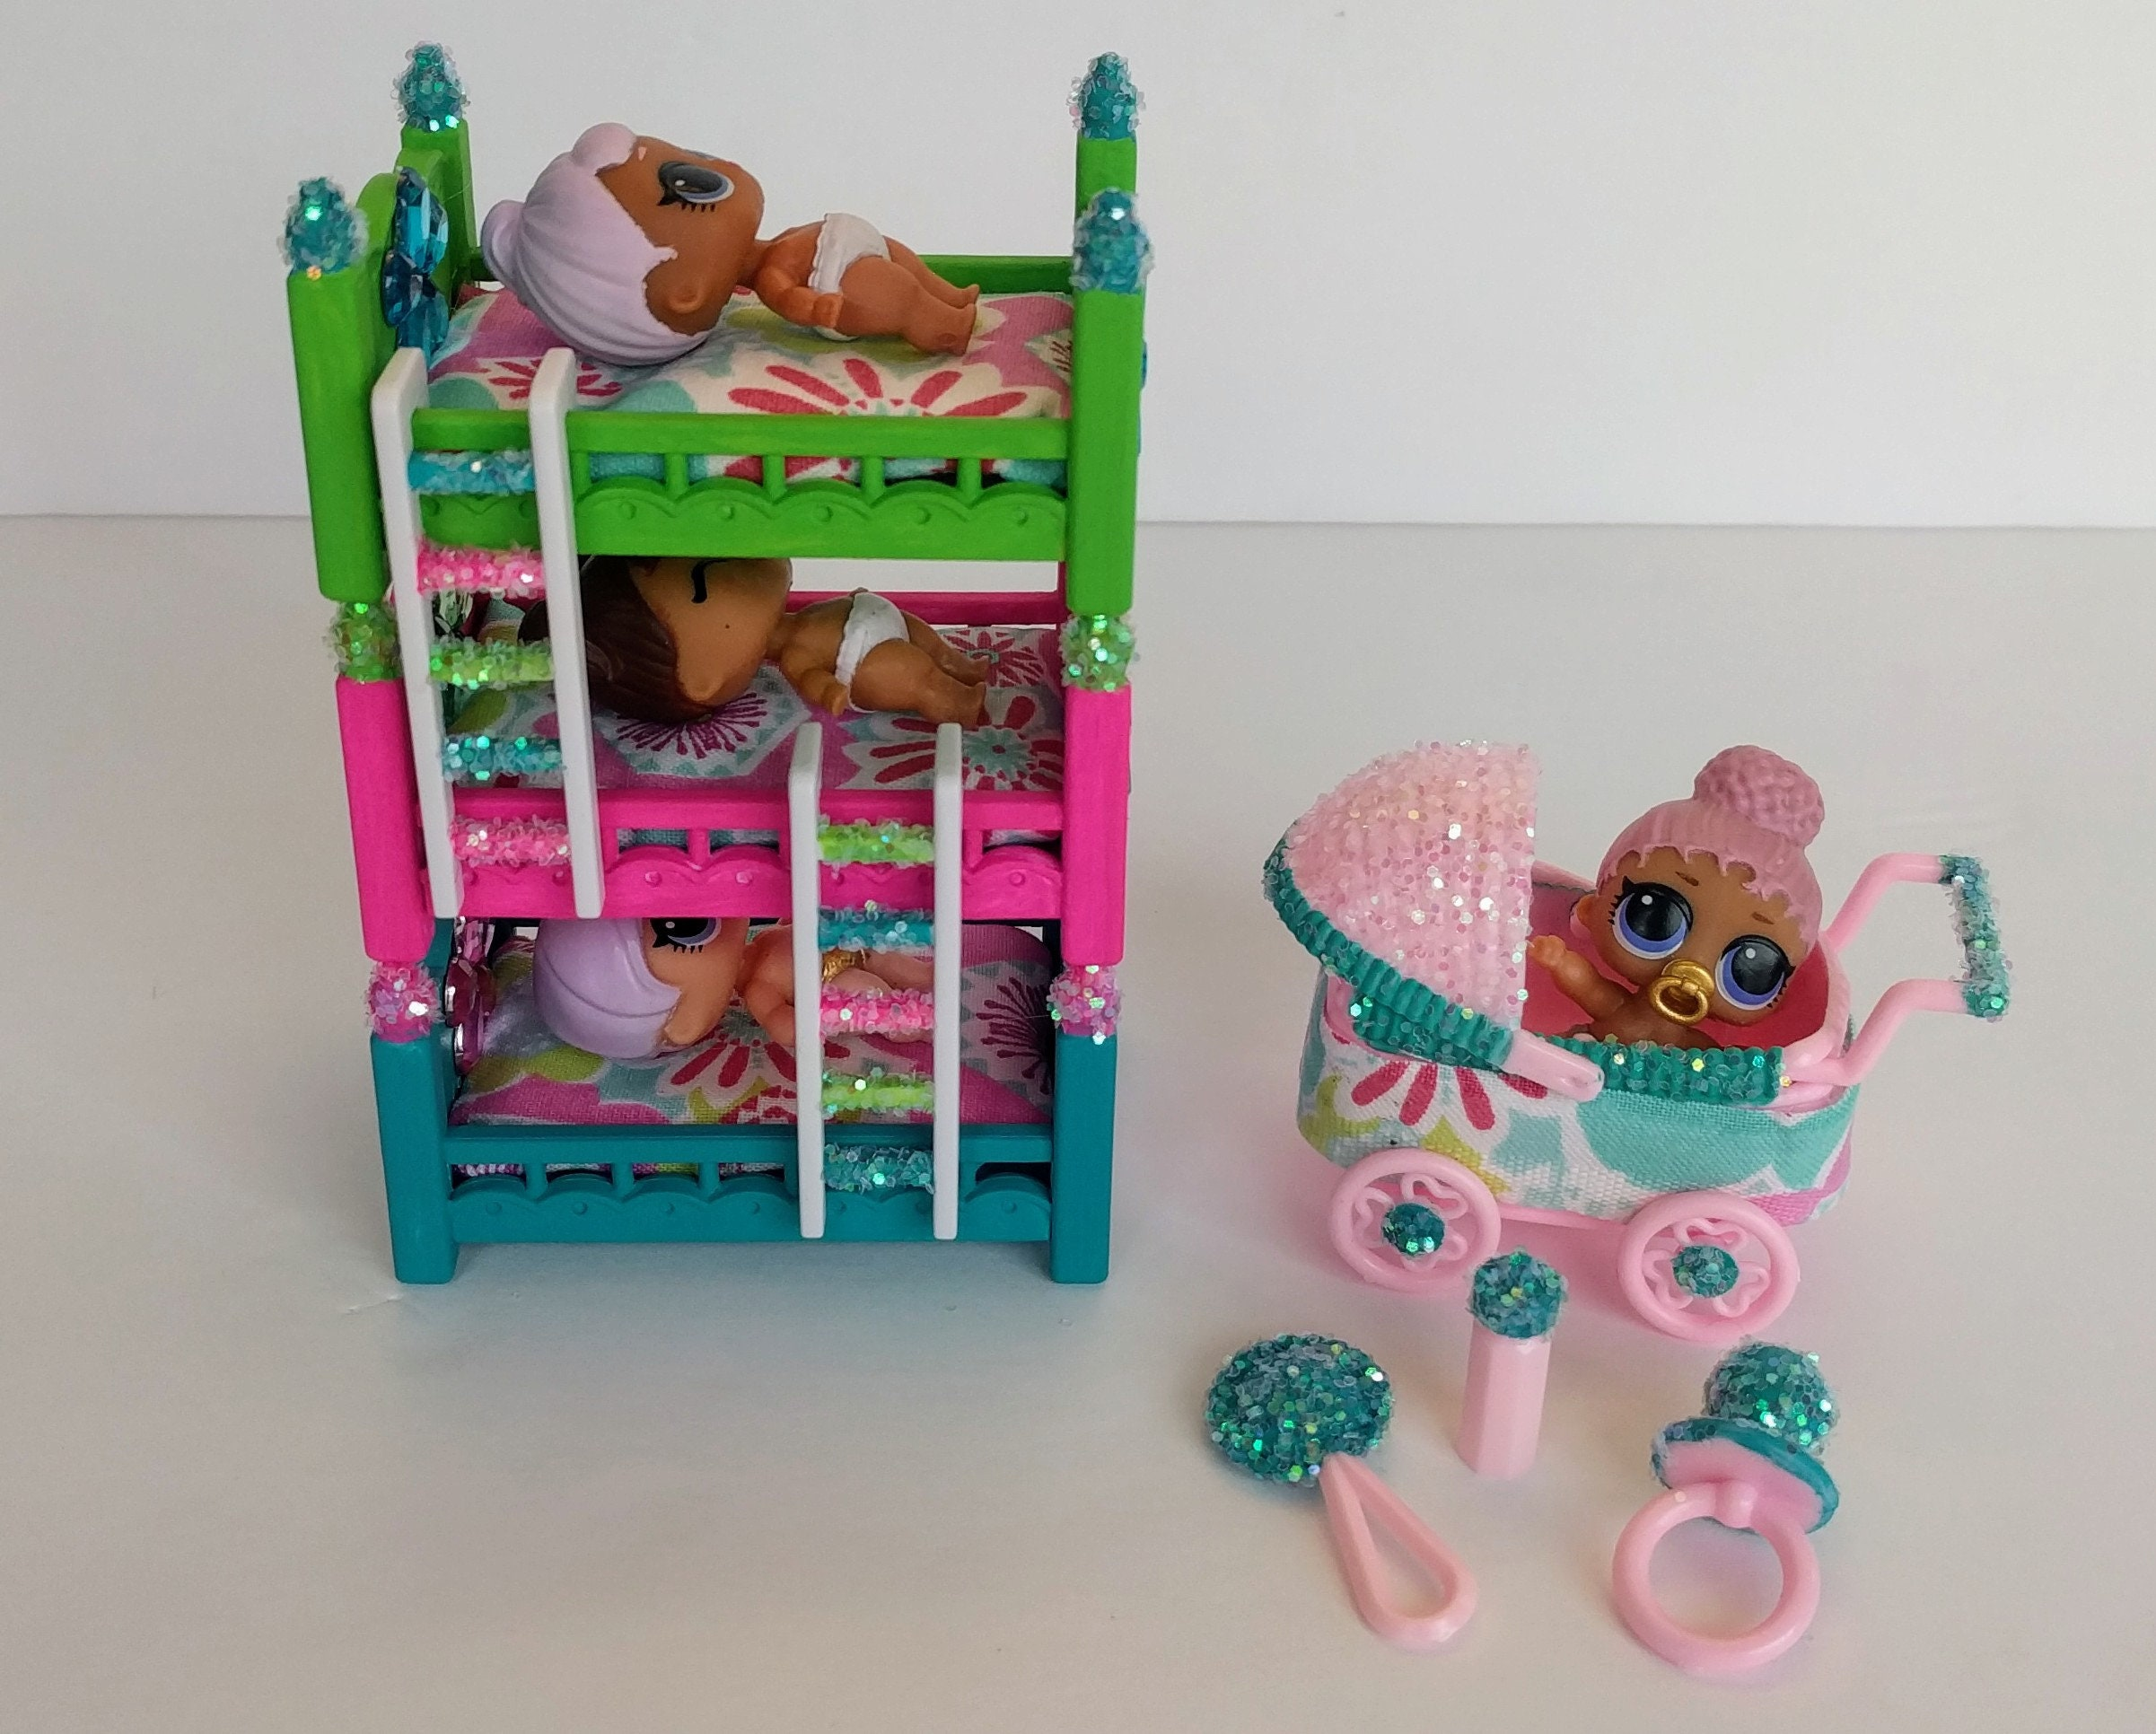 Lol Surprise Doll Custom Made Trio Bunk Beds And Stroller Set Etsy